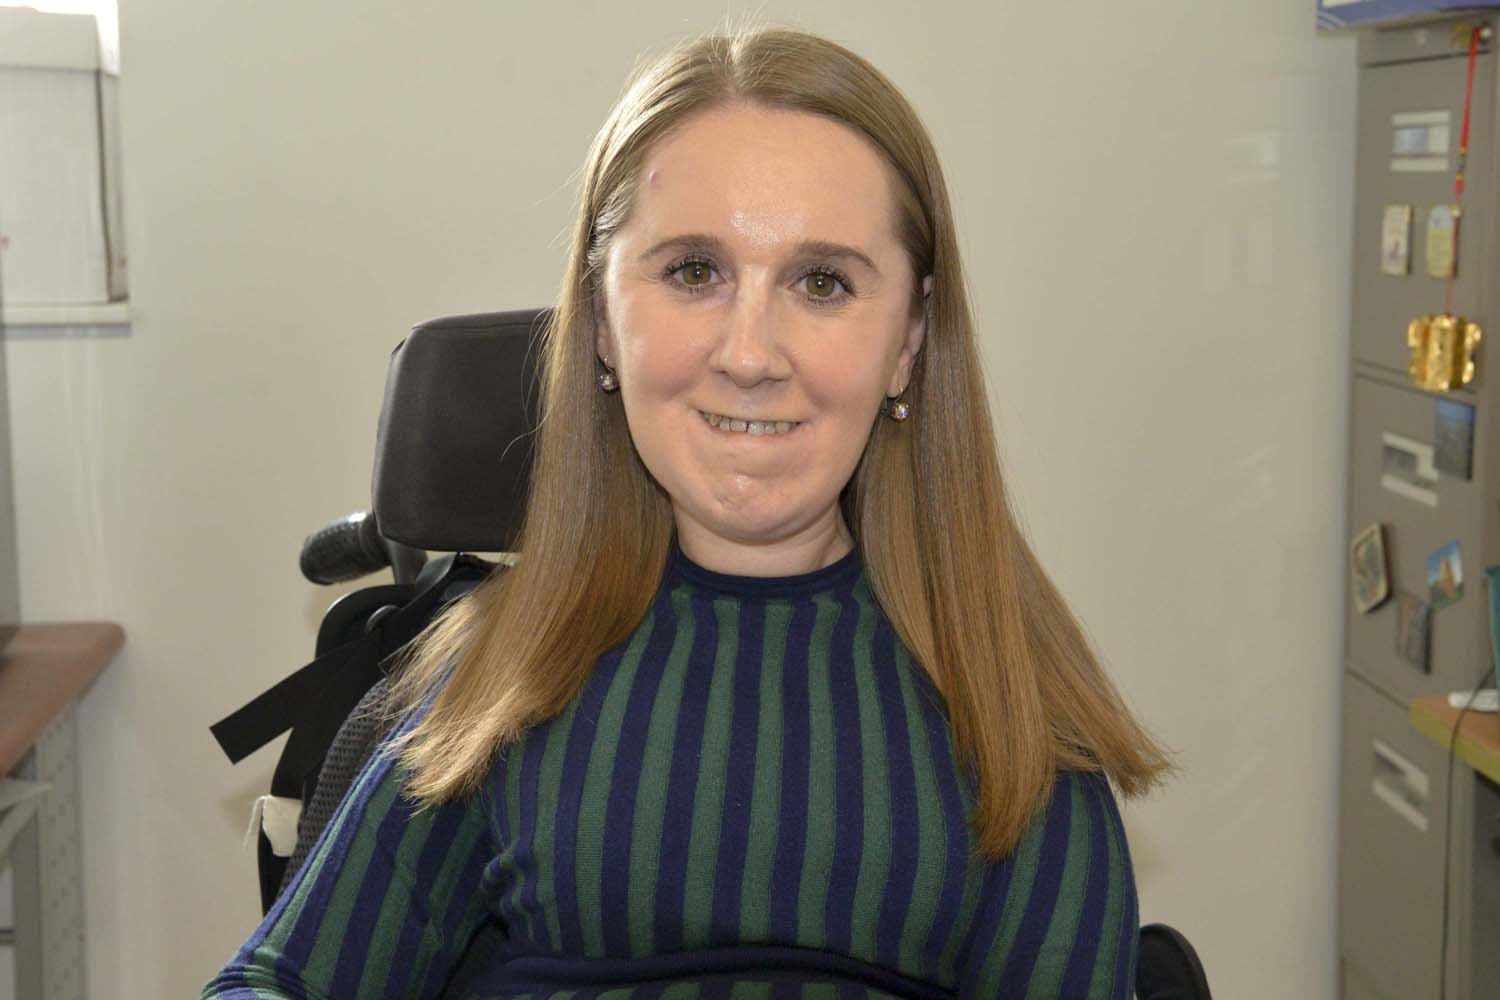 Heather Tomko, a graduate student at Pitt's School of Public Health, advocates for public health to put additional focus on accessibility.